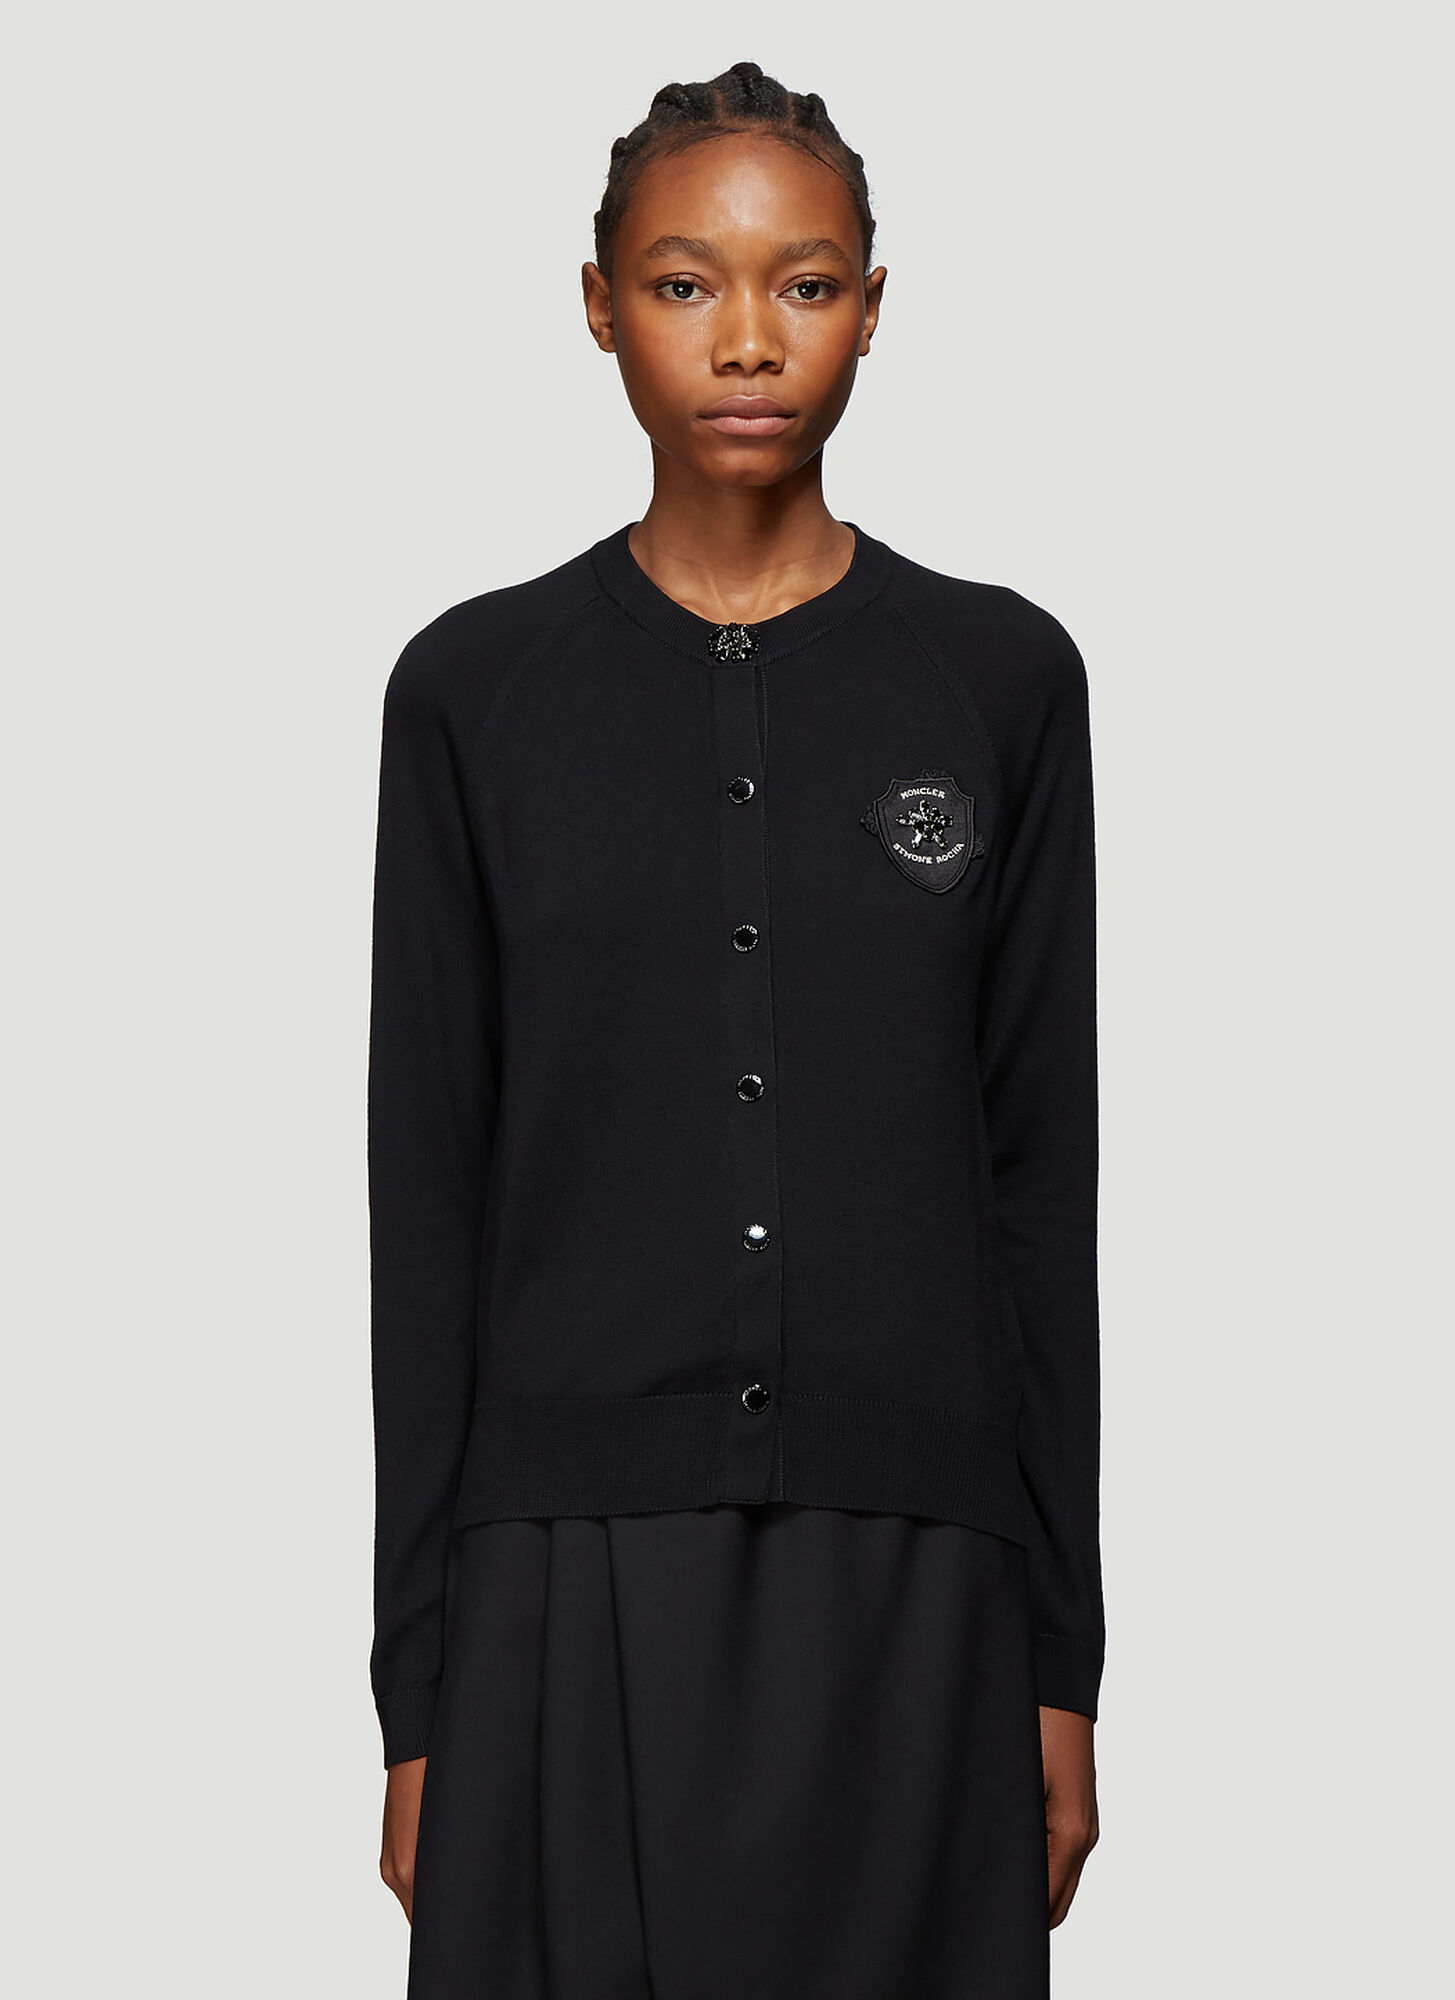 4 Moncler Simone Rocha Logo Patch Wool Cardigan in Black